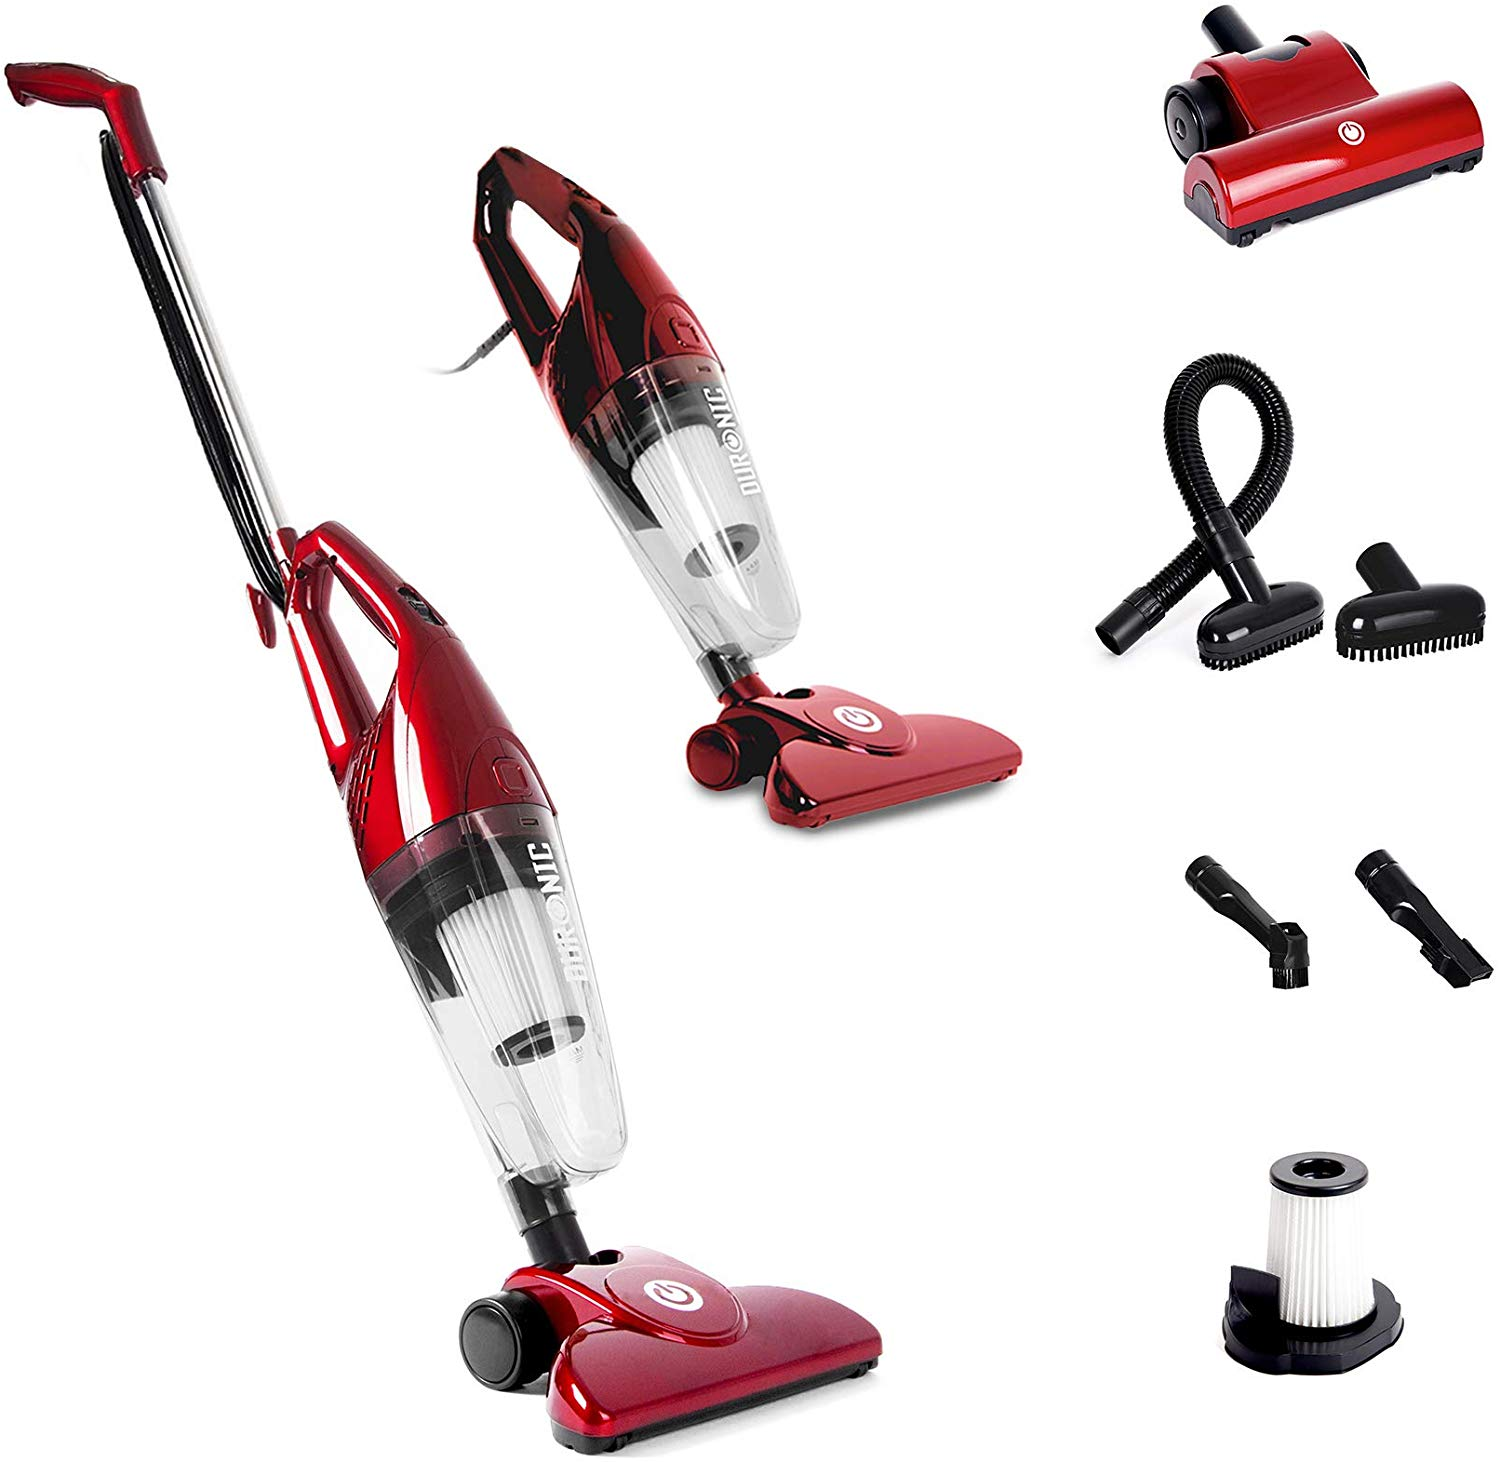 Duronic VC7/RD Upright Stick Vacuum Cleaner Handheld